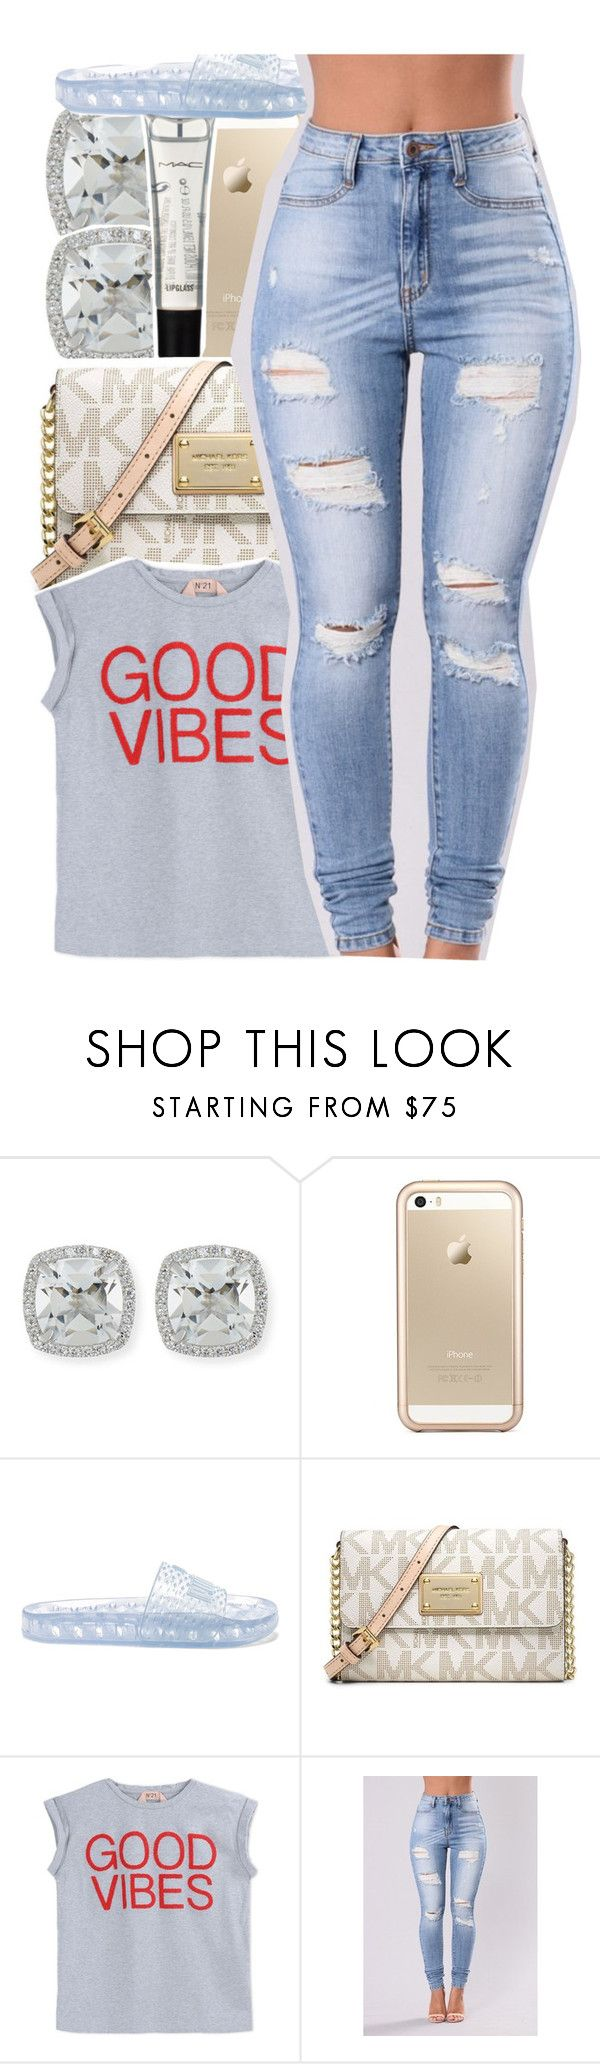 """you stay forever on my mind, see you on the other side. "" by yourmajestytaay ❤ liked on Polyvore featuring Frederic Sage, Squair, M.A.C, Puma, Michael Kors and N°21"